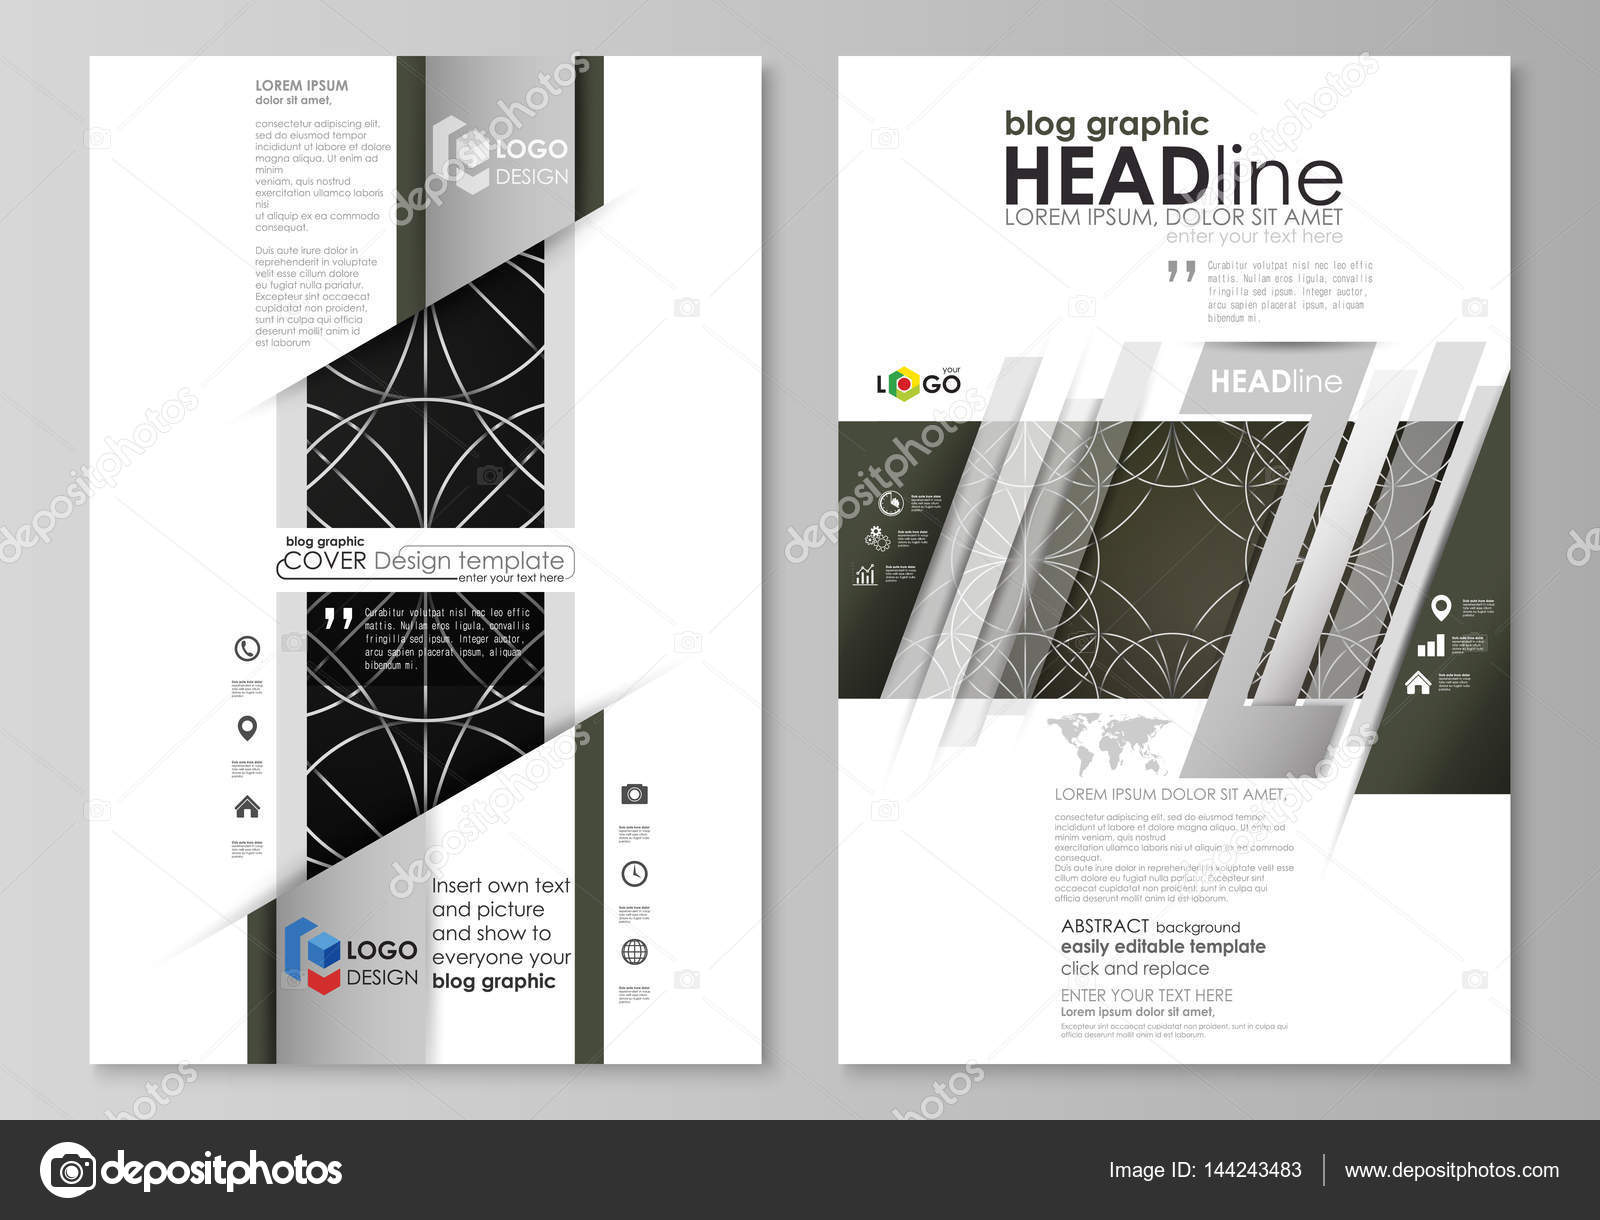 Blog graphic business templates. Page website design template, easy ...